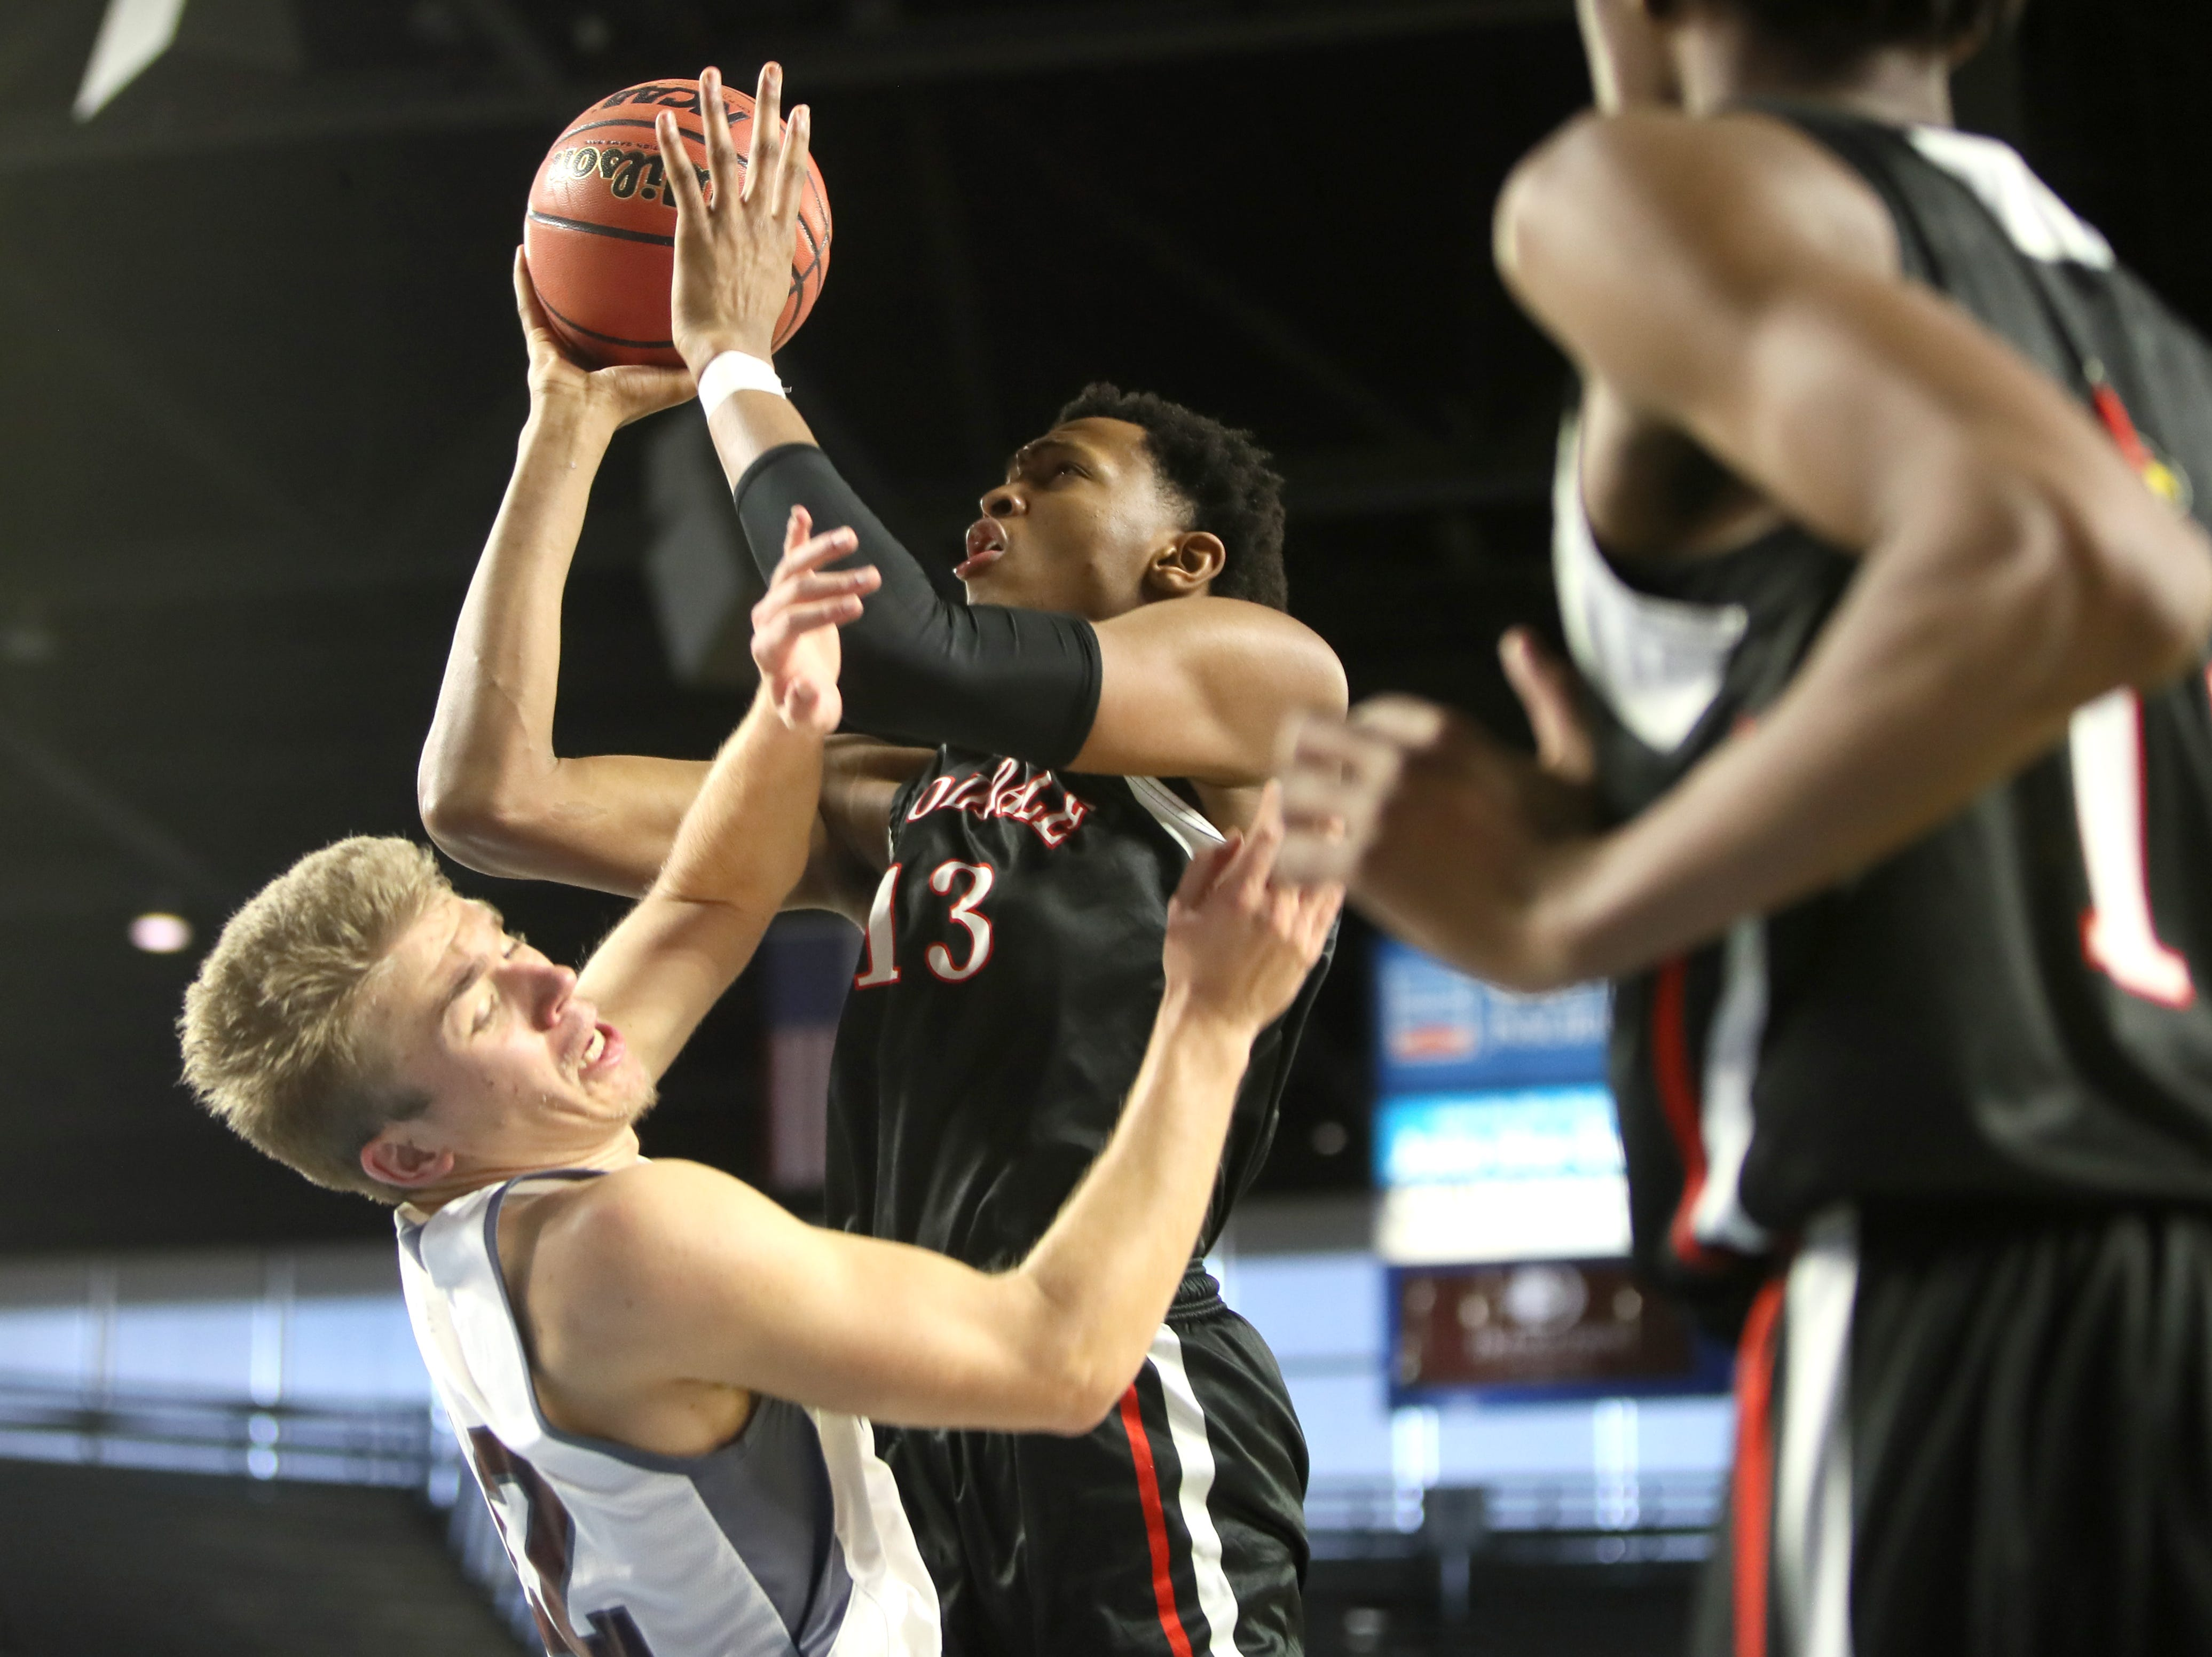 Wooddale's Chandler Lawson shoots the ball over and is fouled by Fulton's Deshaun Page during the Class AA boys basketball state championship game at the Murphy Center in Murfreesboro, Tenn. on Saturday, March 16, 2019.